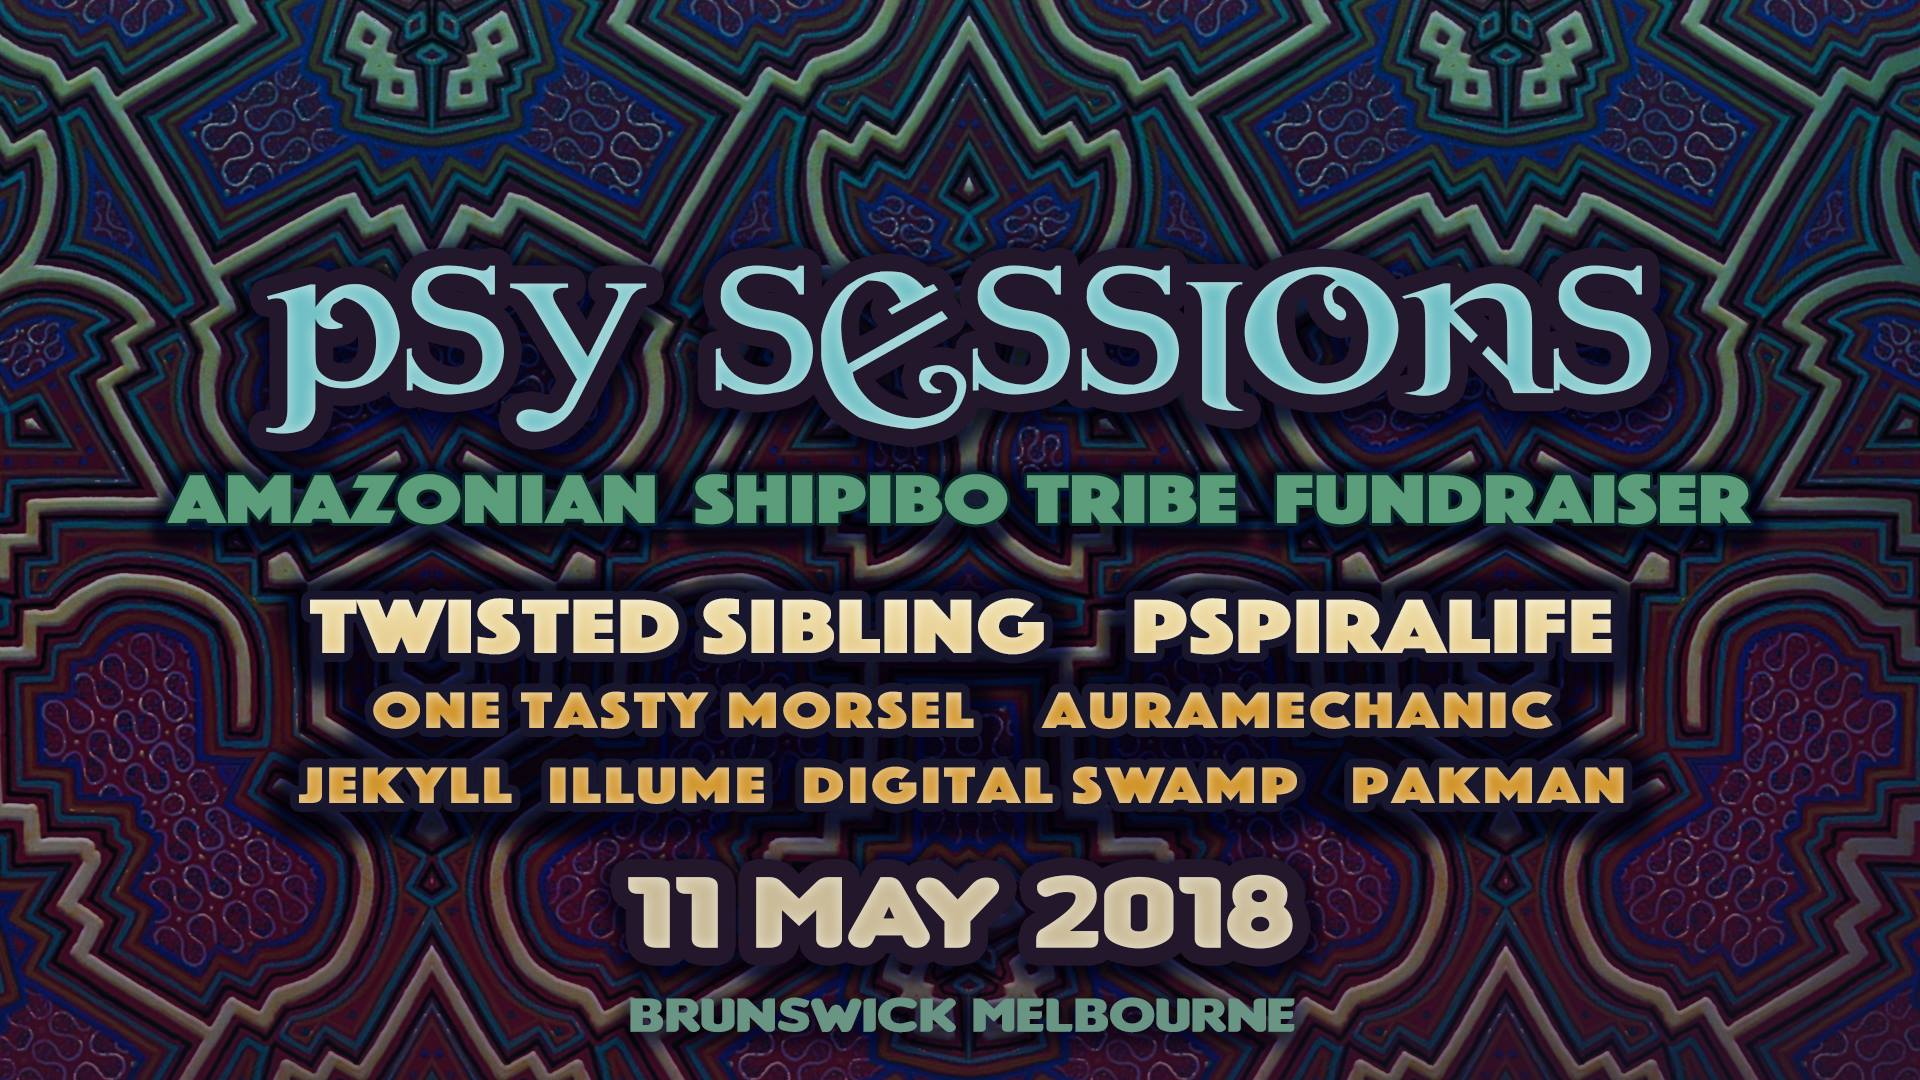 Psy Sessions - Shipibo Fundraiser 2018